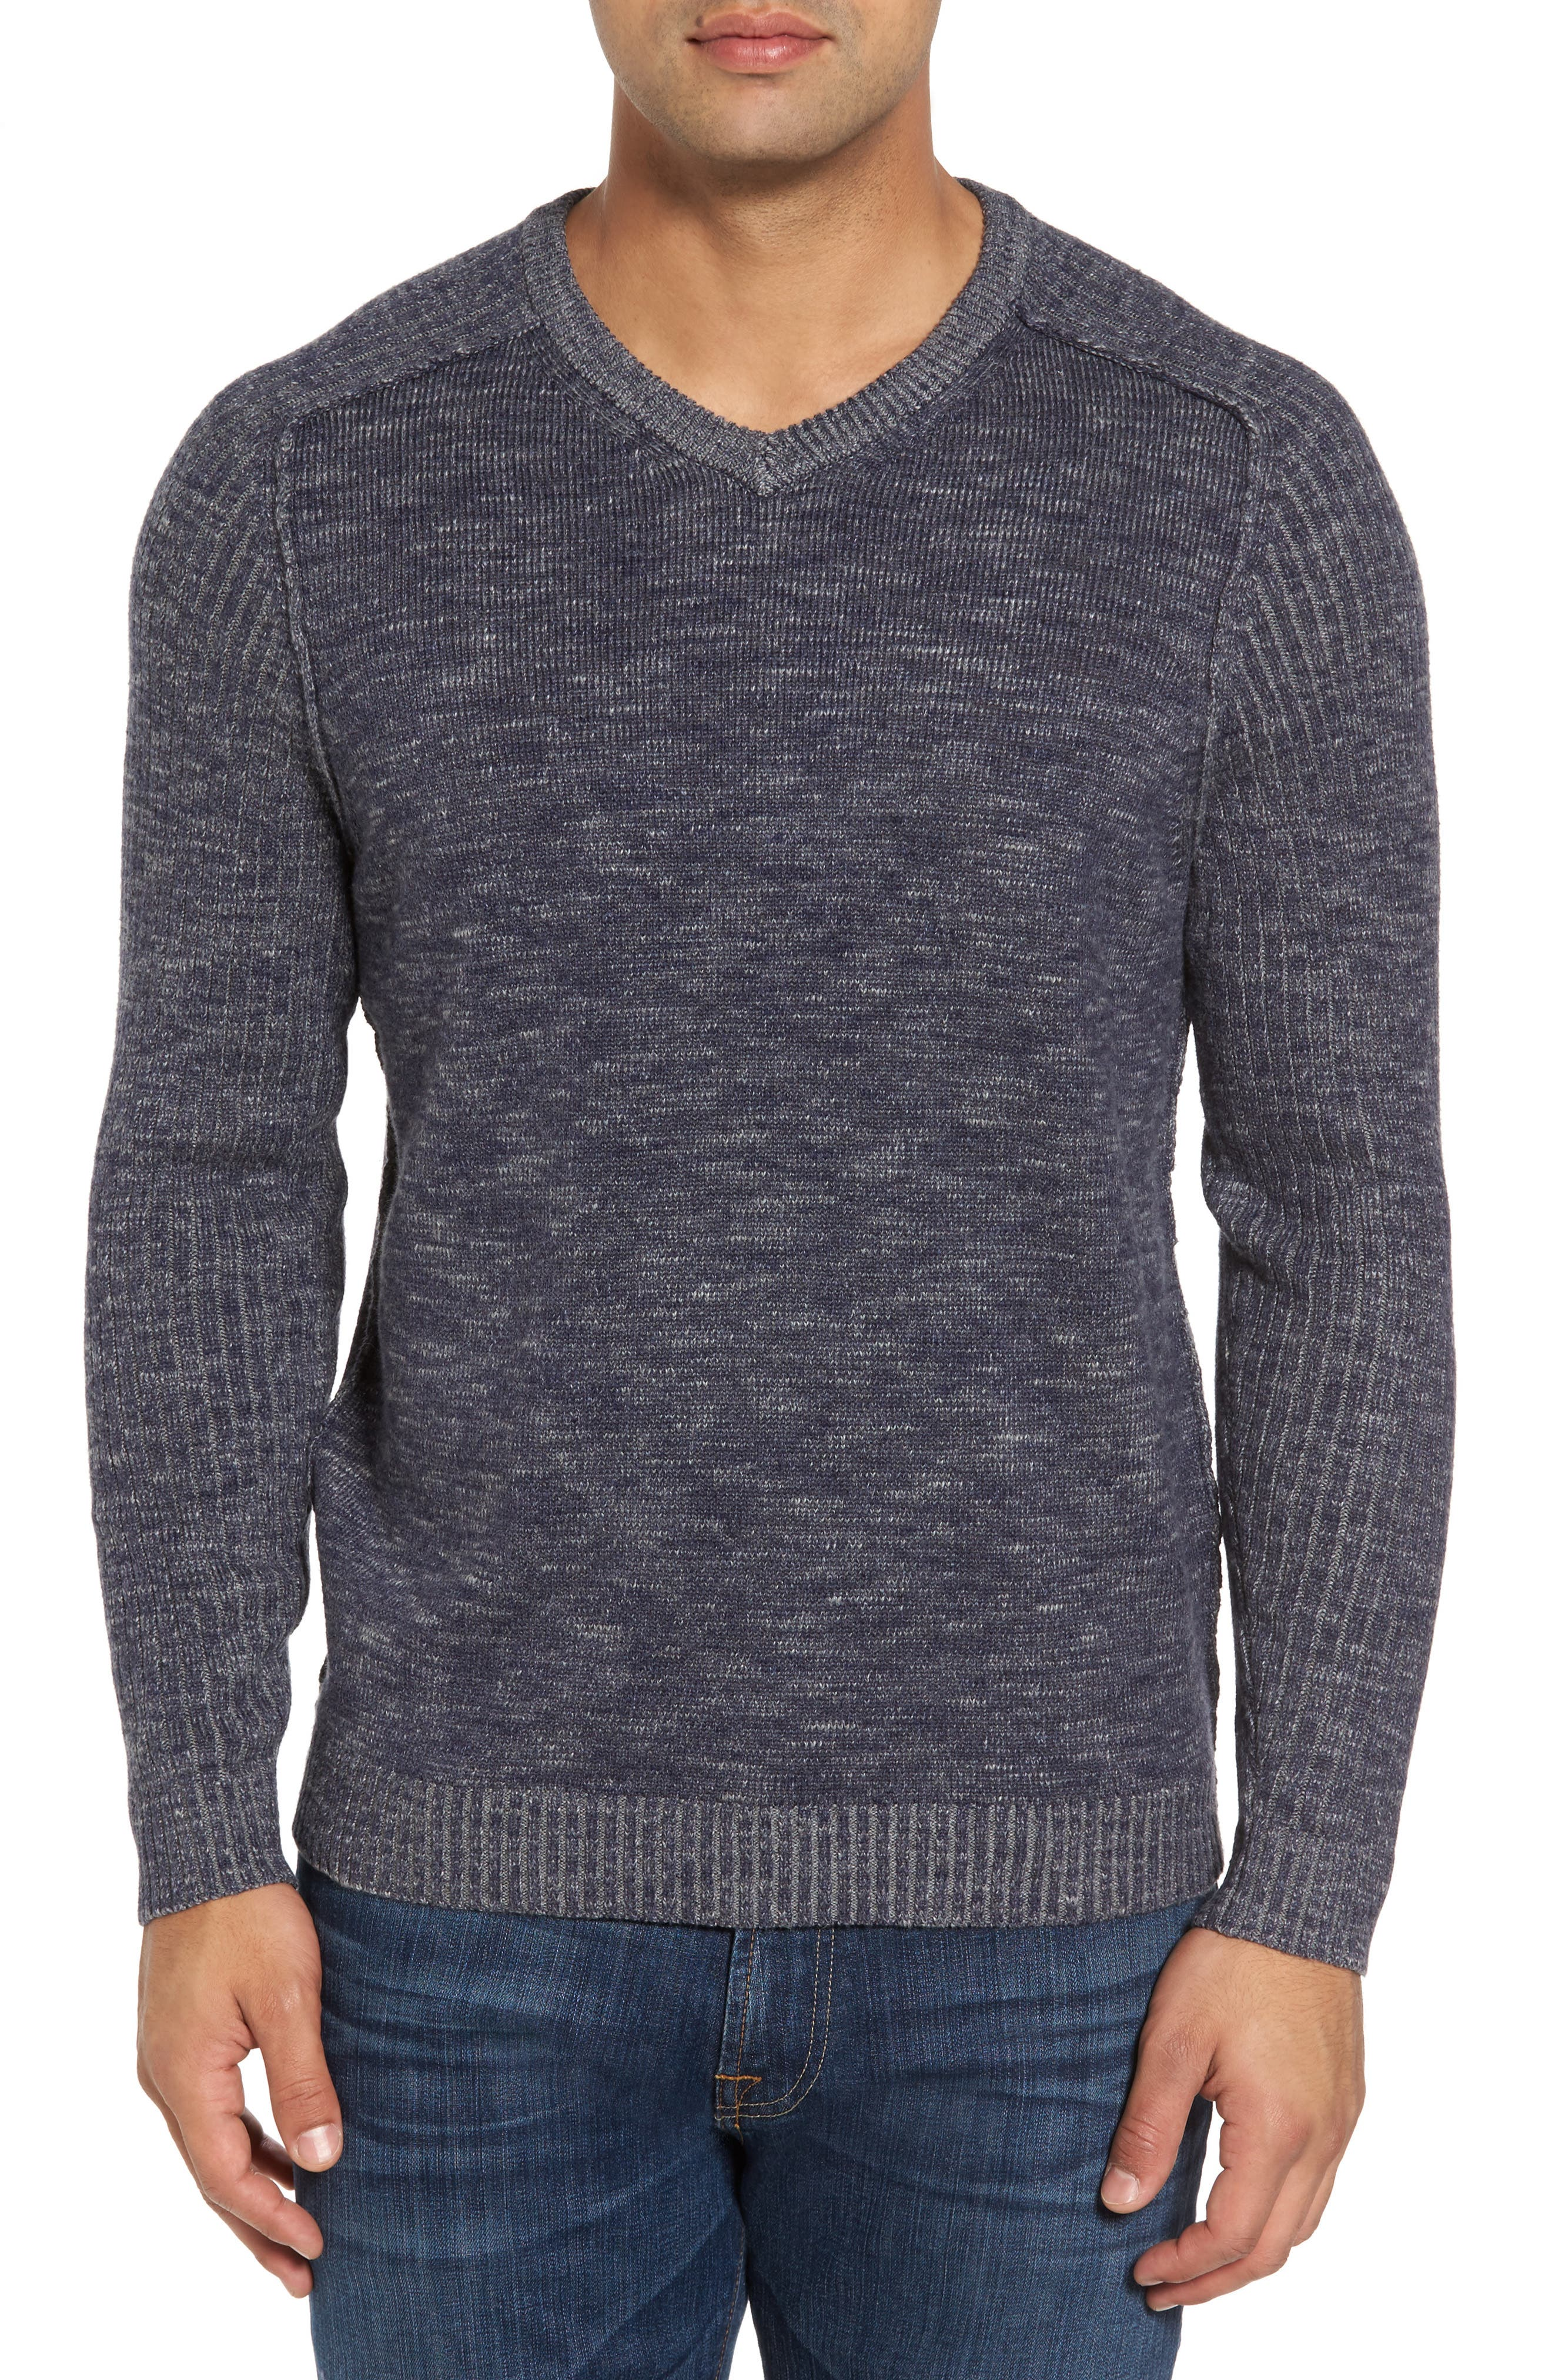 Alternate Image 1 Selected - Tommy Bahama Gran Rey Flip Reversible Cotton & Wool Sweater